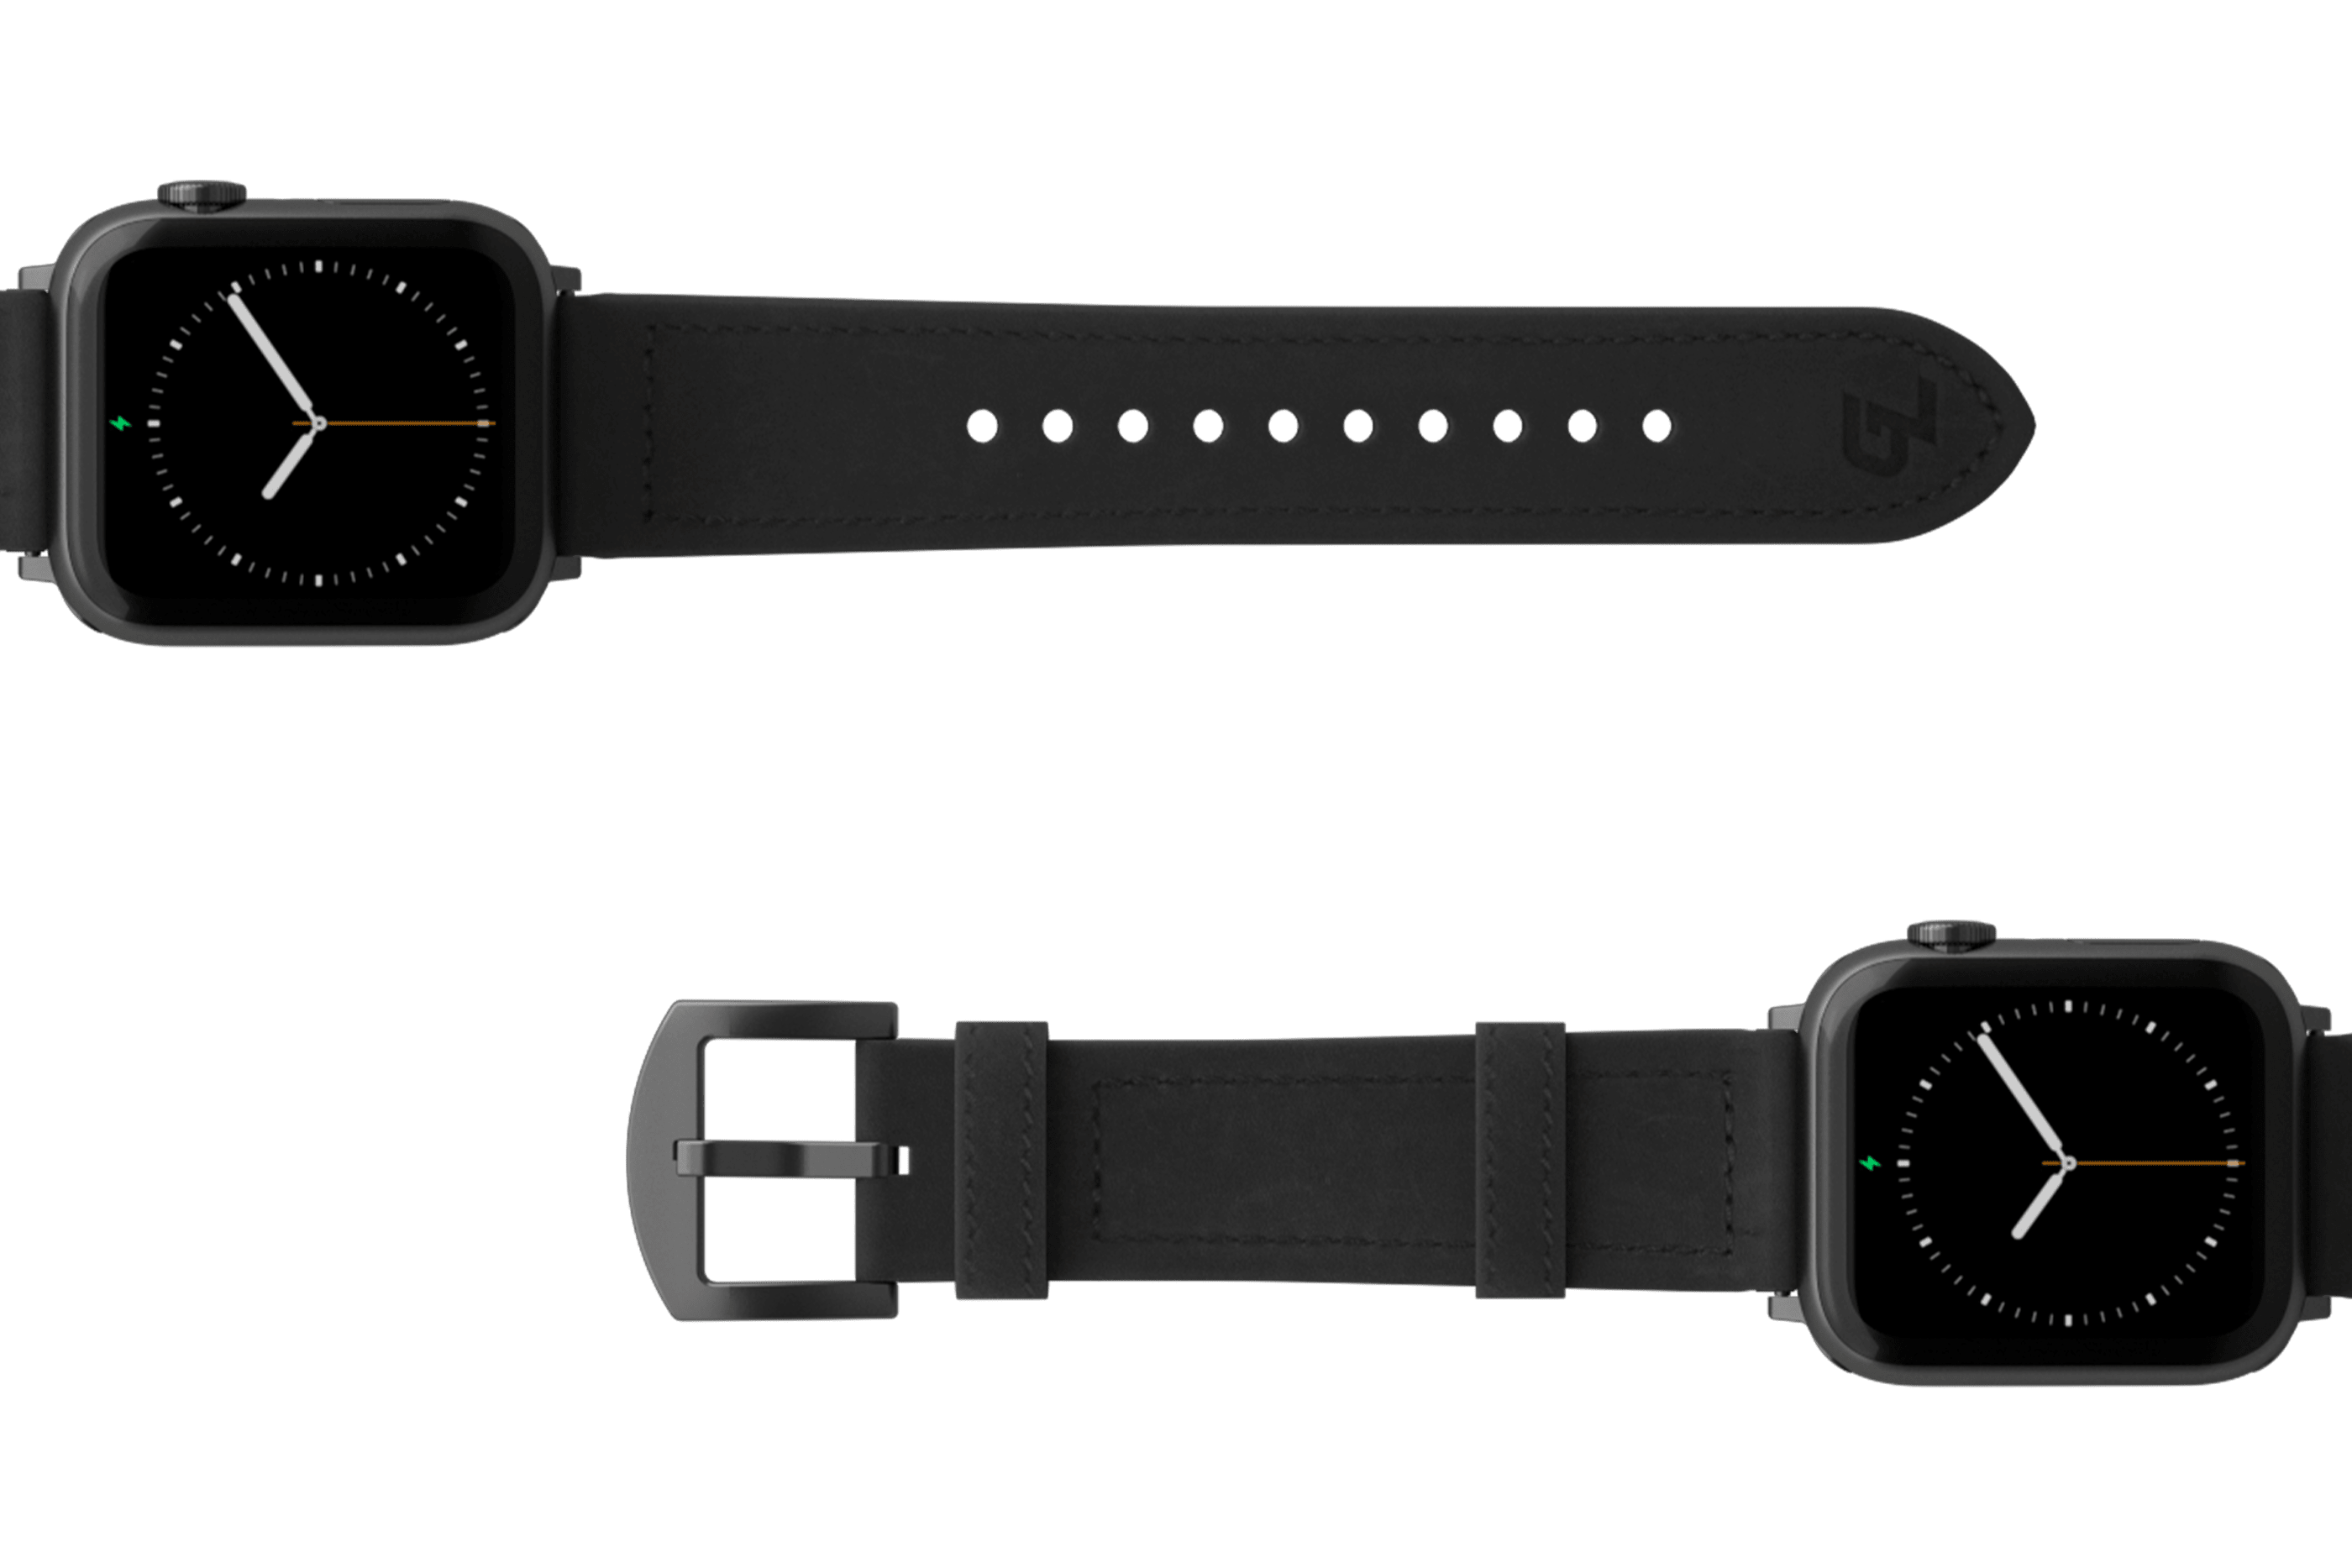 Vulcan Obsidian Black Leather Apple watch band  with gray hardware viewed top down